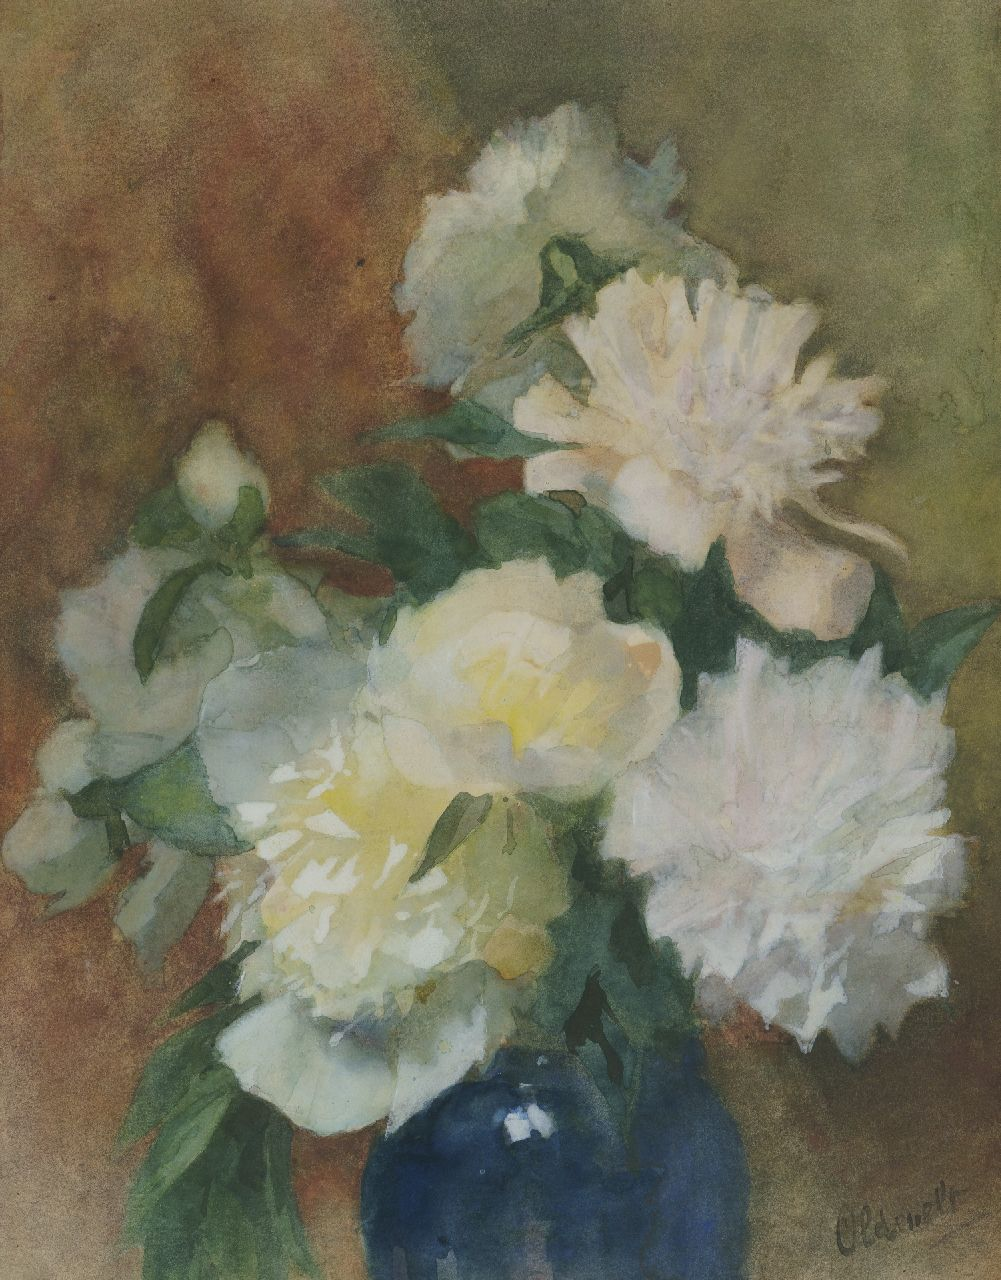 Ferdinand Oldewelt | Peonies in a blue vase, watercolour on paper, 50.3 x 38.3 cm, signed l.r.